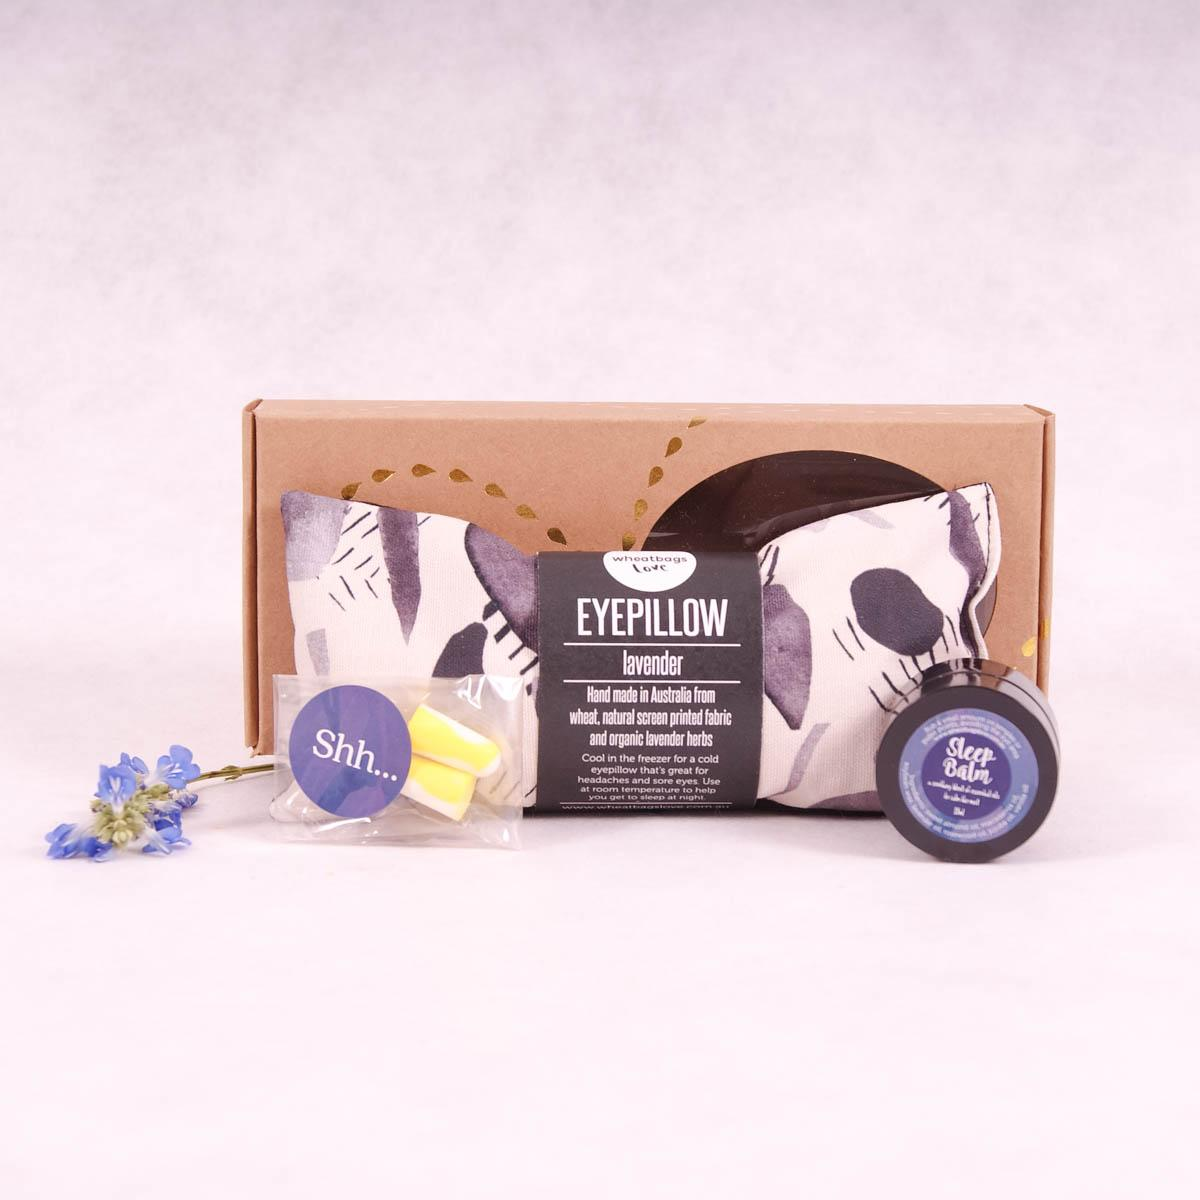 Wheatbags Love Sleep Gift Pack - Daintree Black - Sleep Gift Pack - Throw Some Seeds - Australian gardening gifts and eco products online!